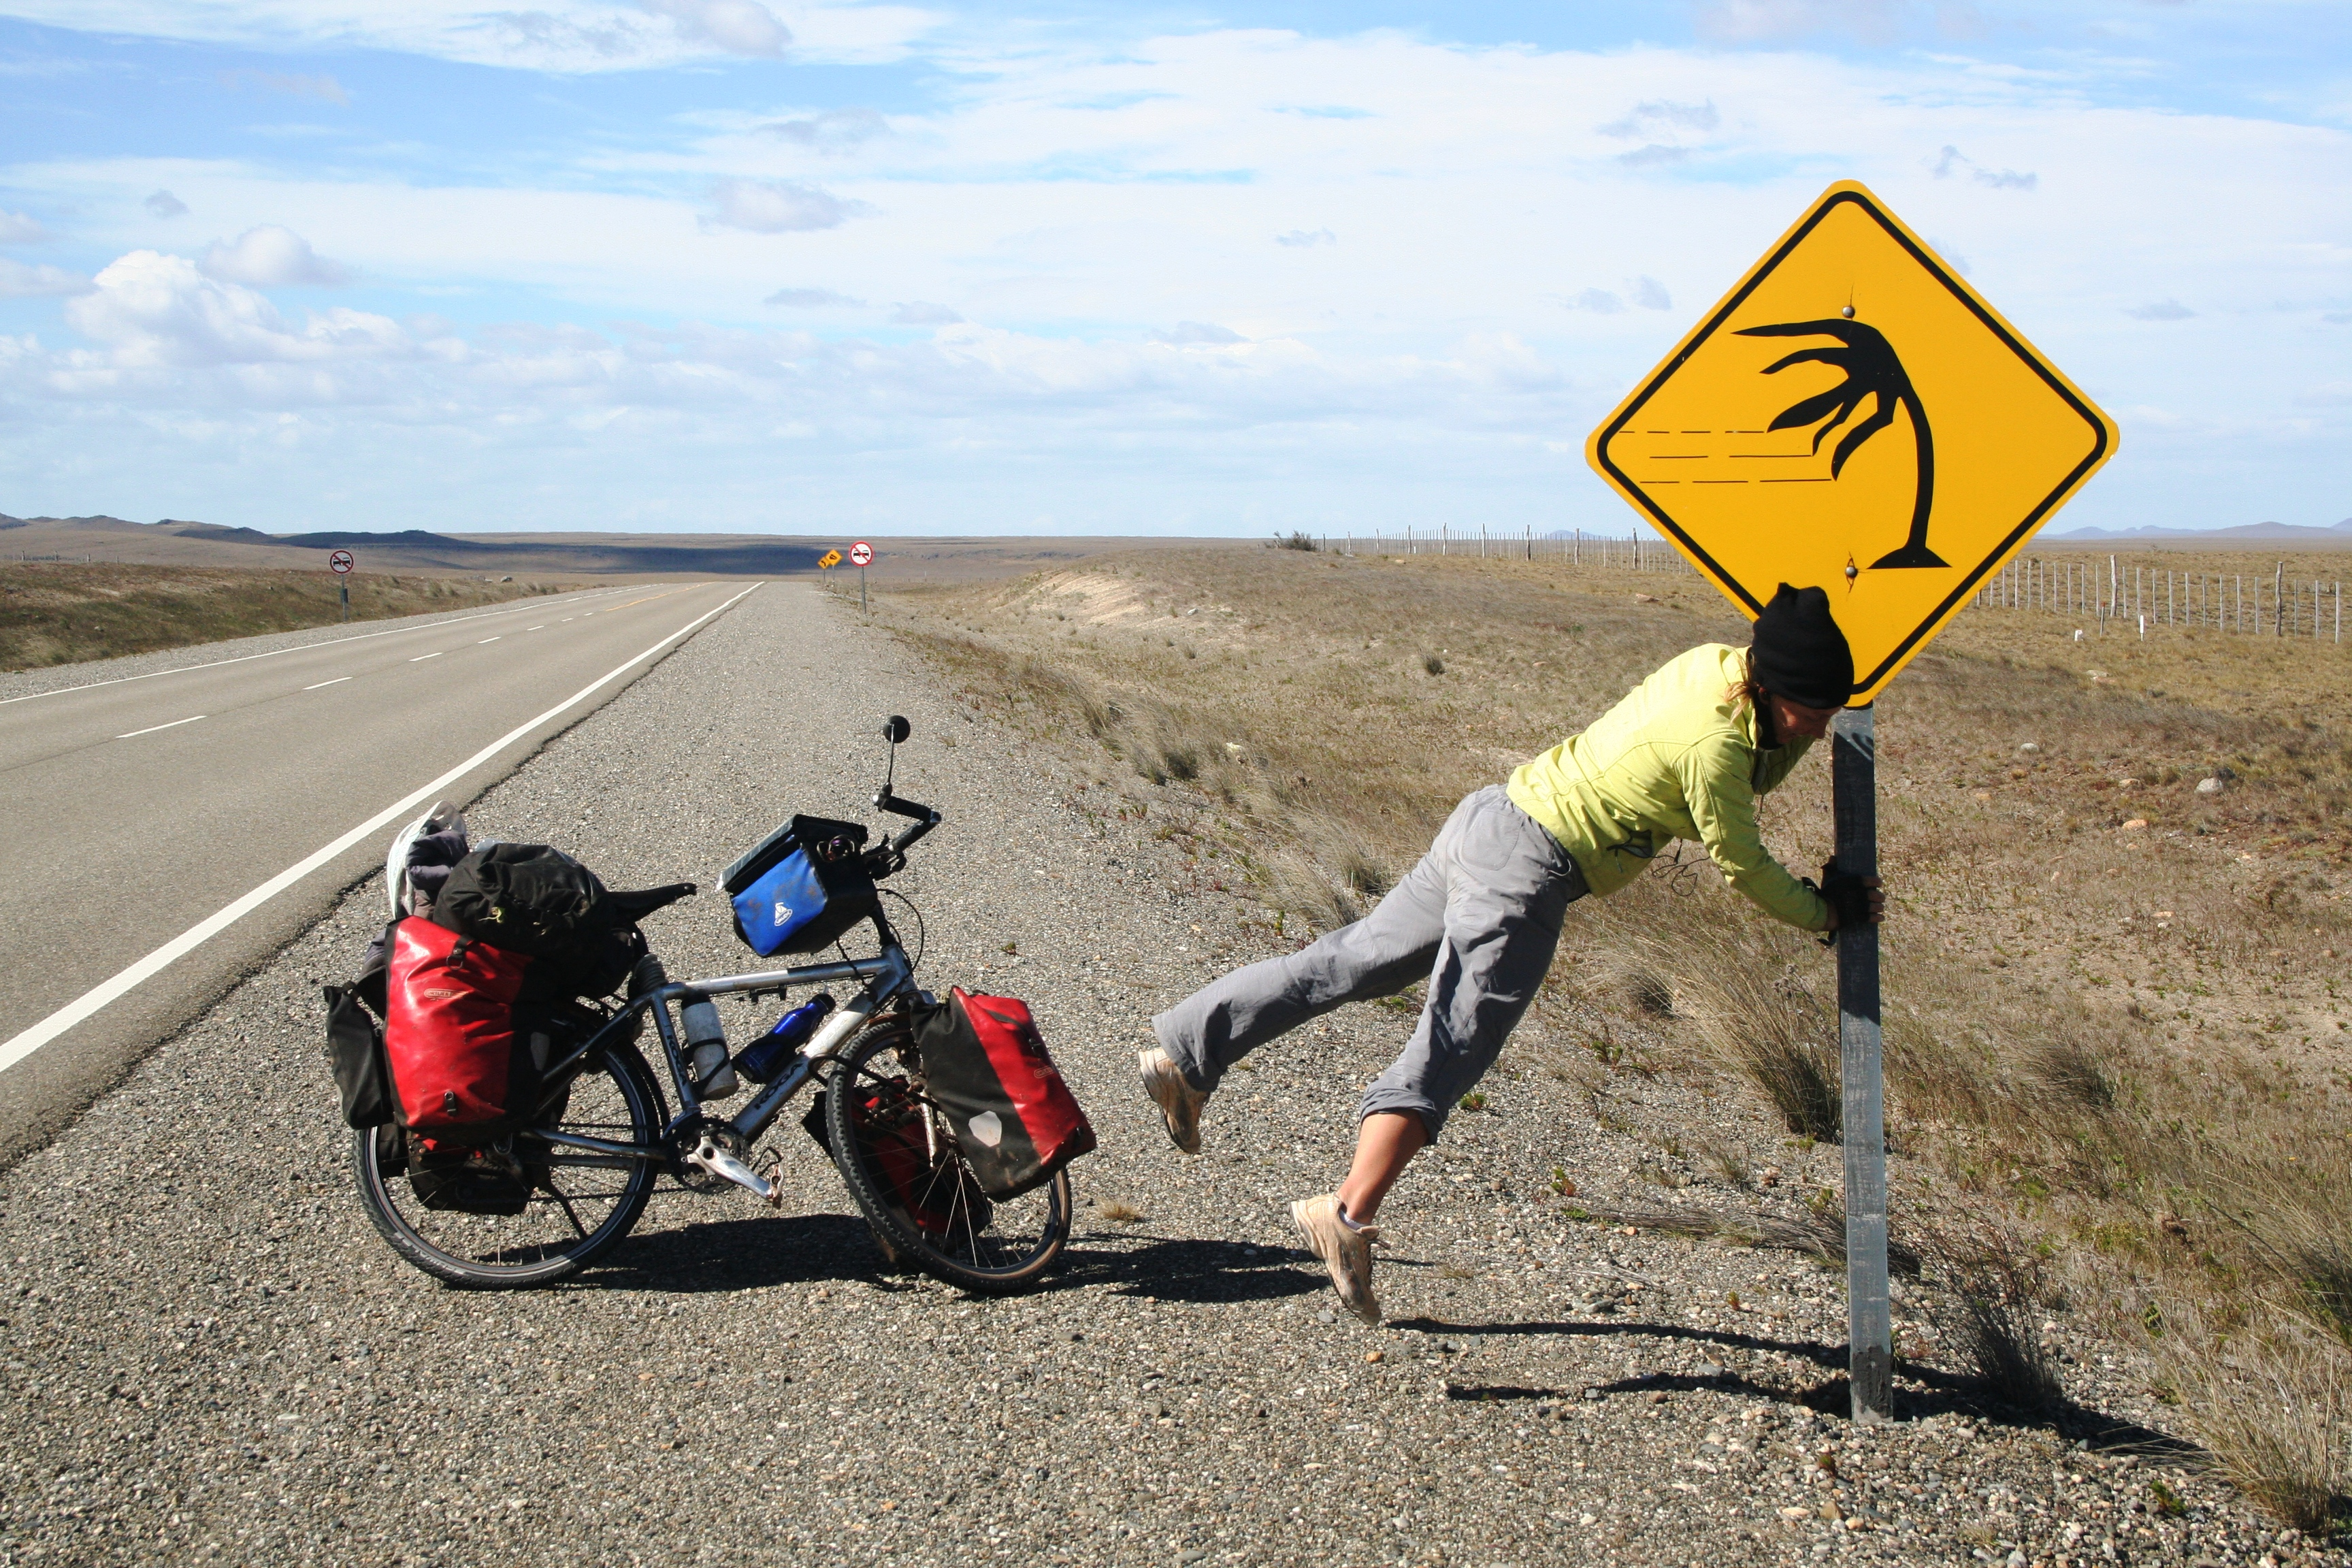 windy bicycle touring in argentina ruta 40